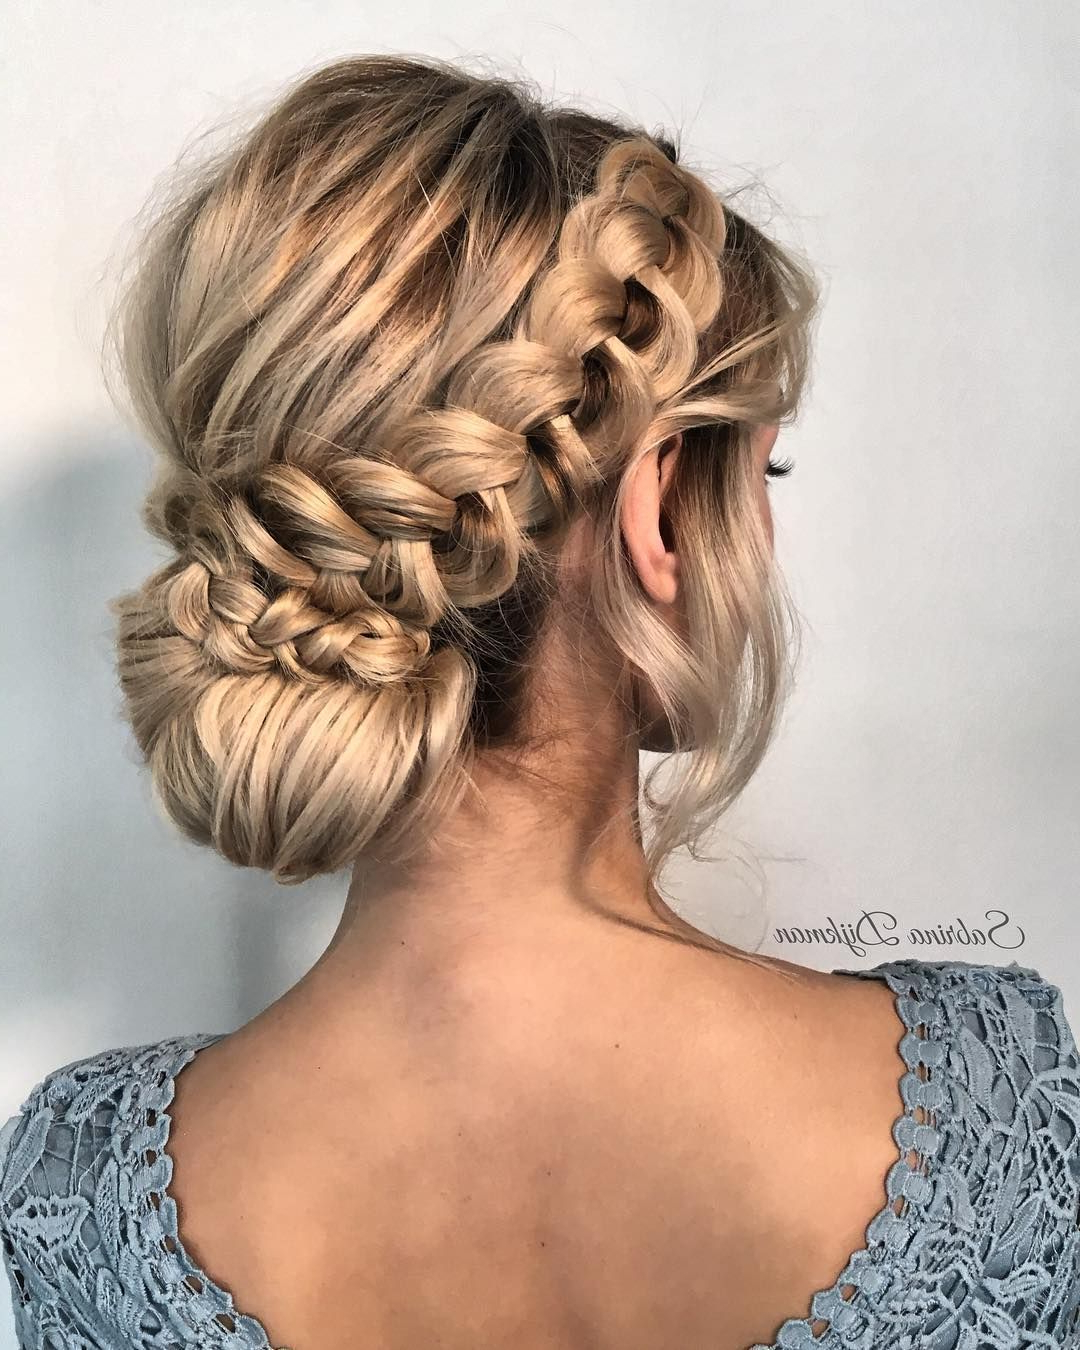 Current Messy Crown Braid Updo Hairstyles For Beautiful Wedding Braided Updo Hairstyle ,messy Updo Wedding (View 7 of 20)